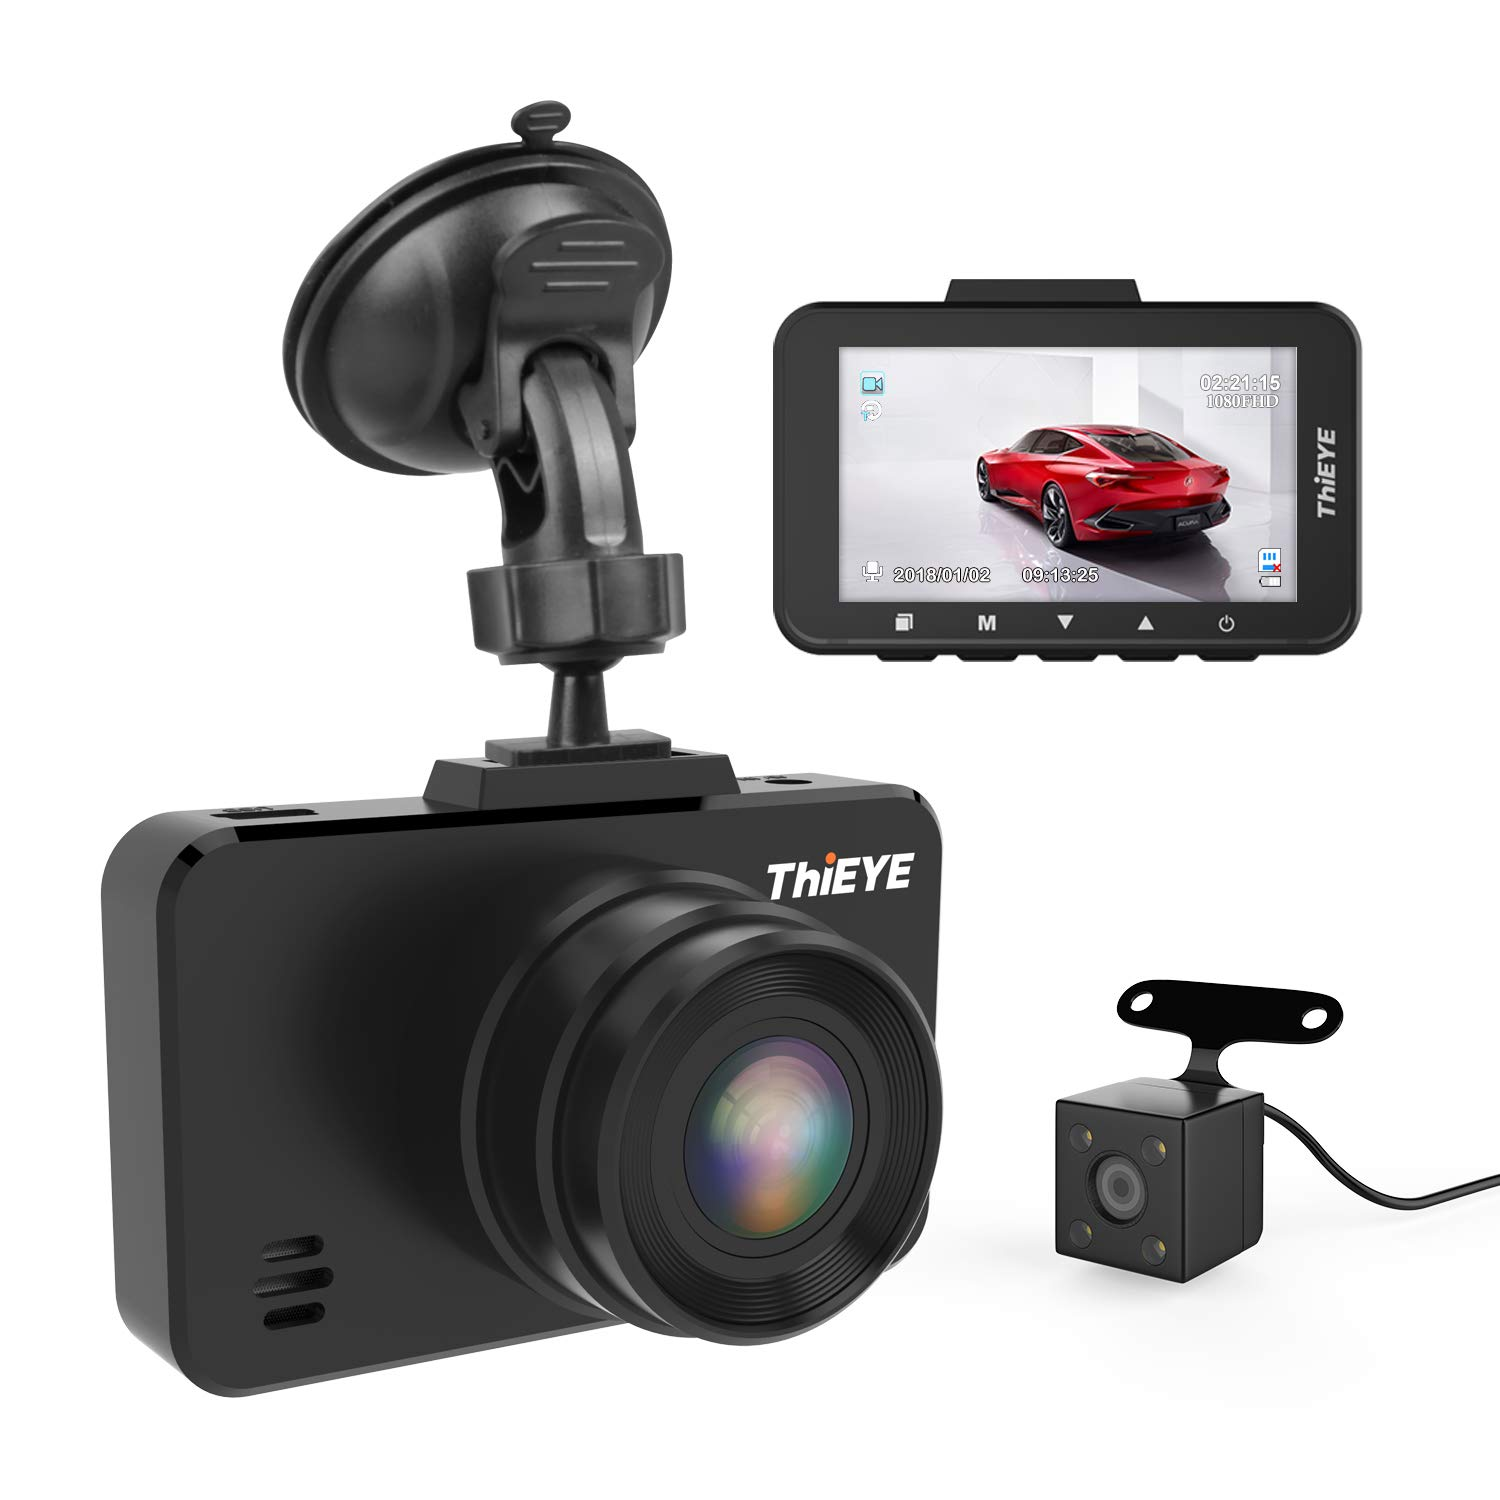 ThiEYE Dash Cam 1080P Full HD Car DVR Dashboard Camera Recorder with Super Wide Angle, WDR, Loop Recording, Parking Monitor, G-Sensor and Clear Night Vision (Front and Rear Dashcam) by ThiEYE